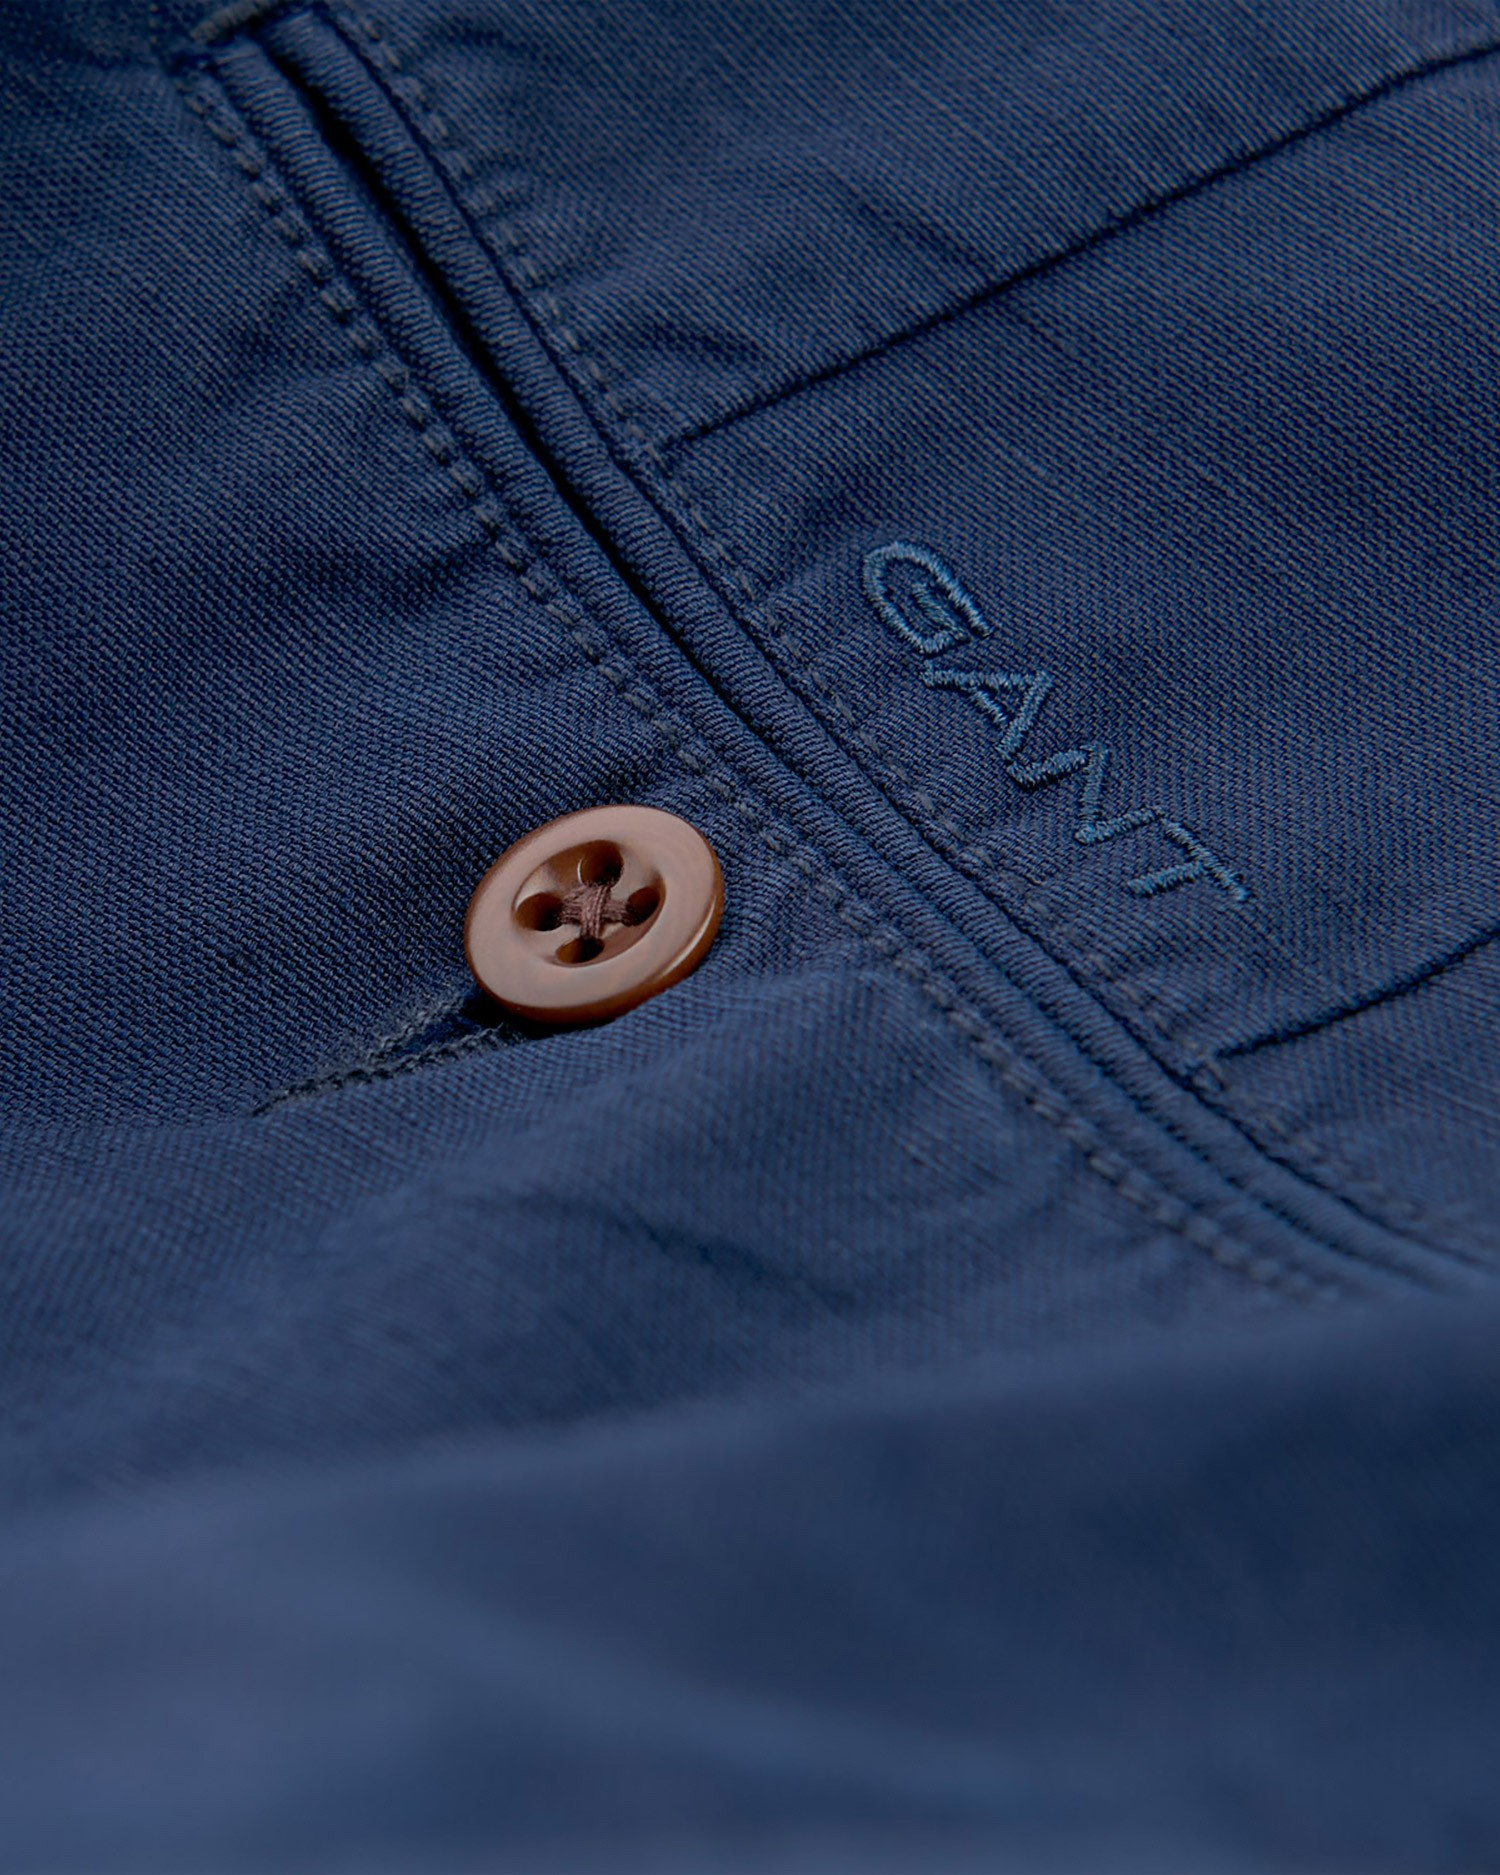 GANT Men's Cotton Linen Chino - 1502050